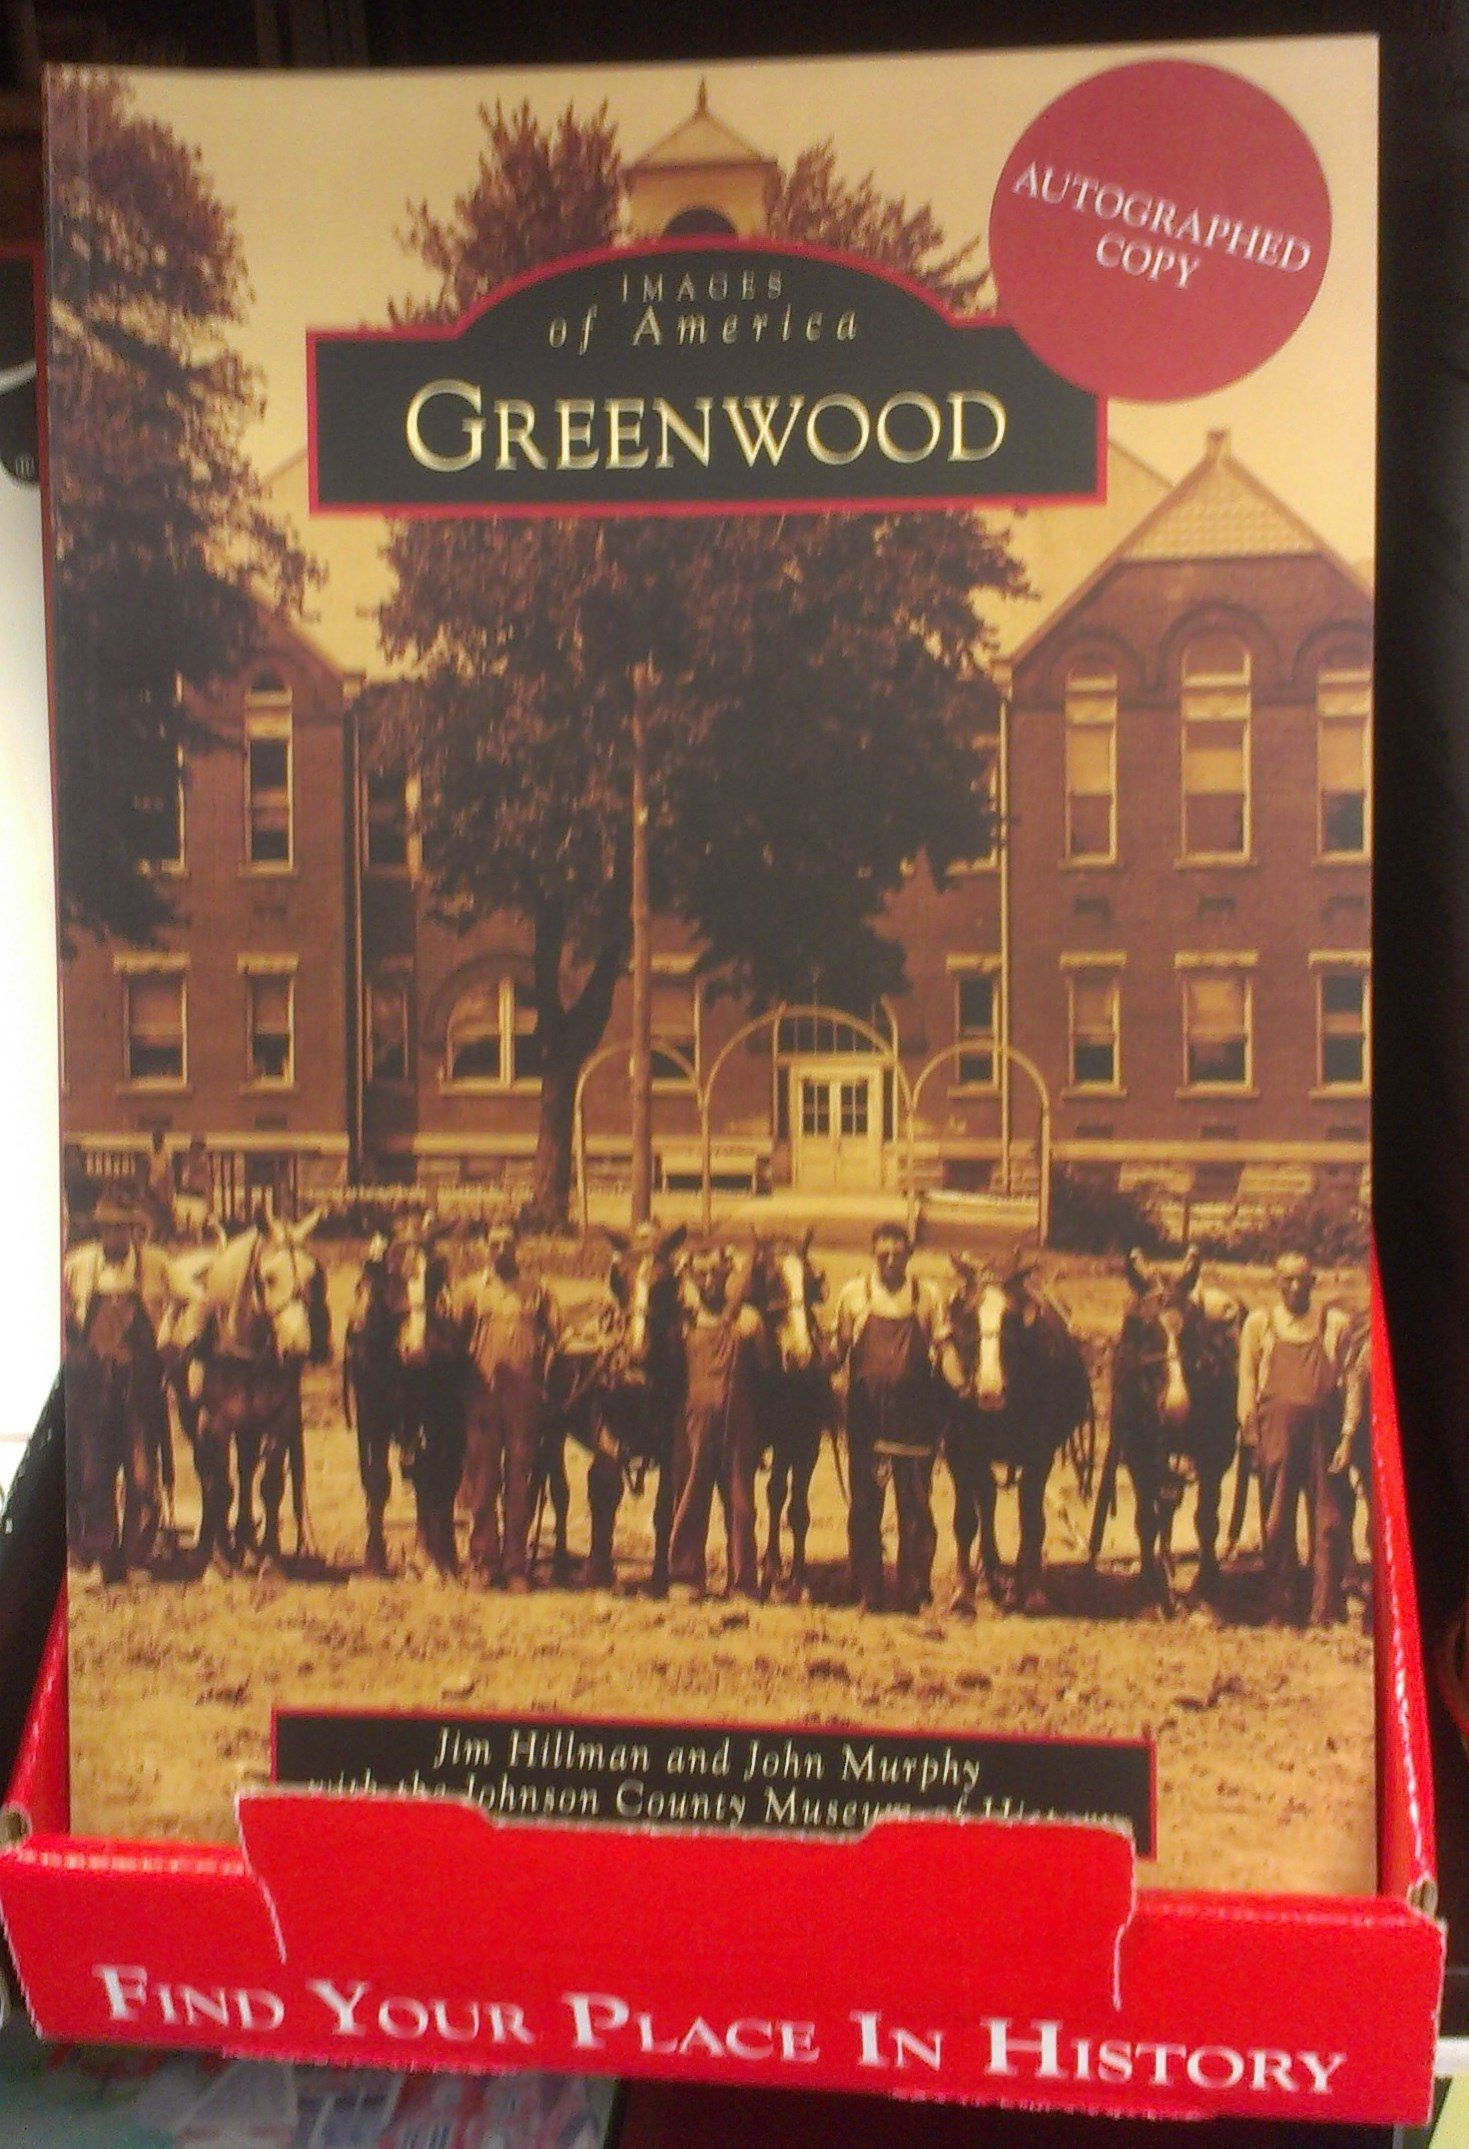 Greenwood history book on sale in the Johnson County Museum's gift shop.  Many of the